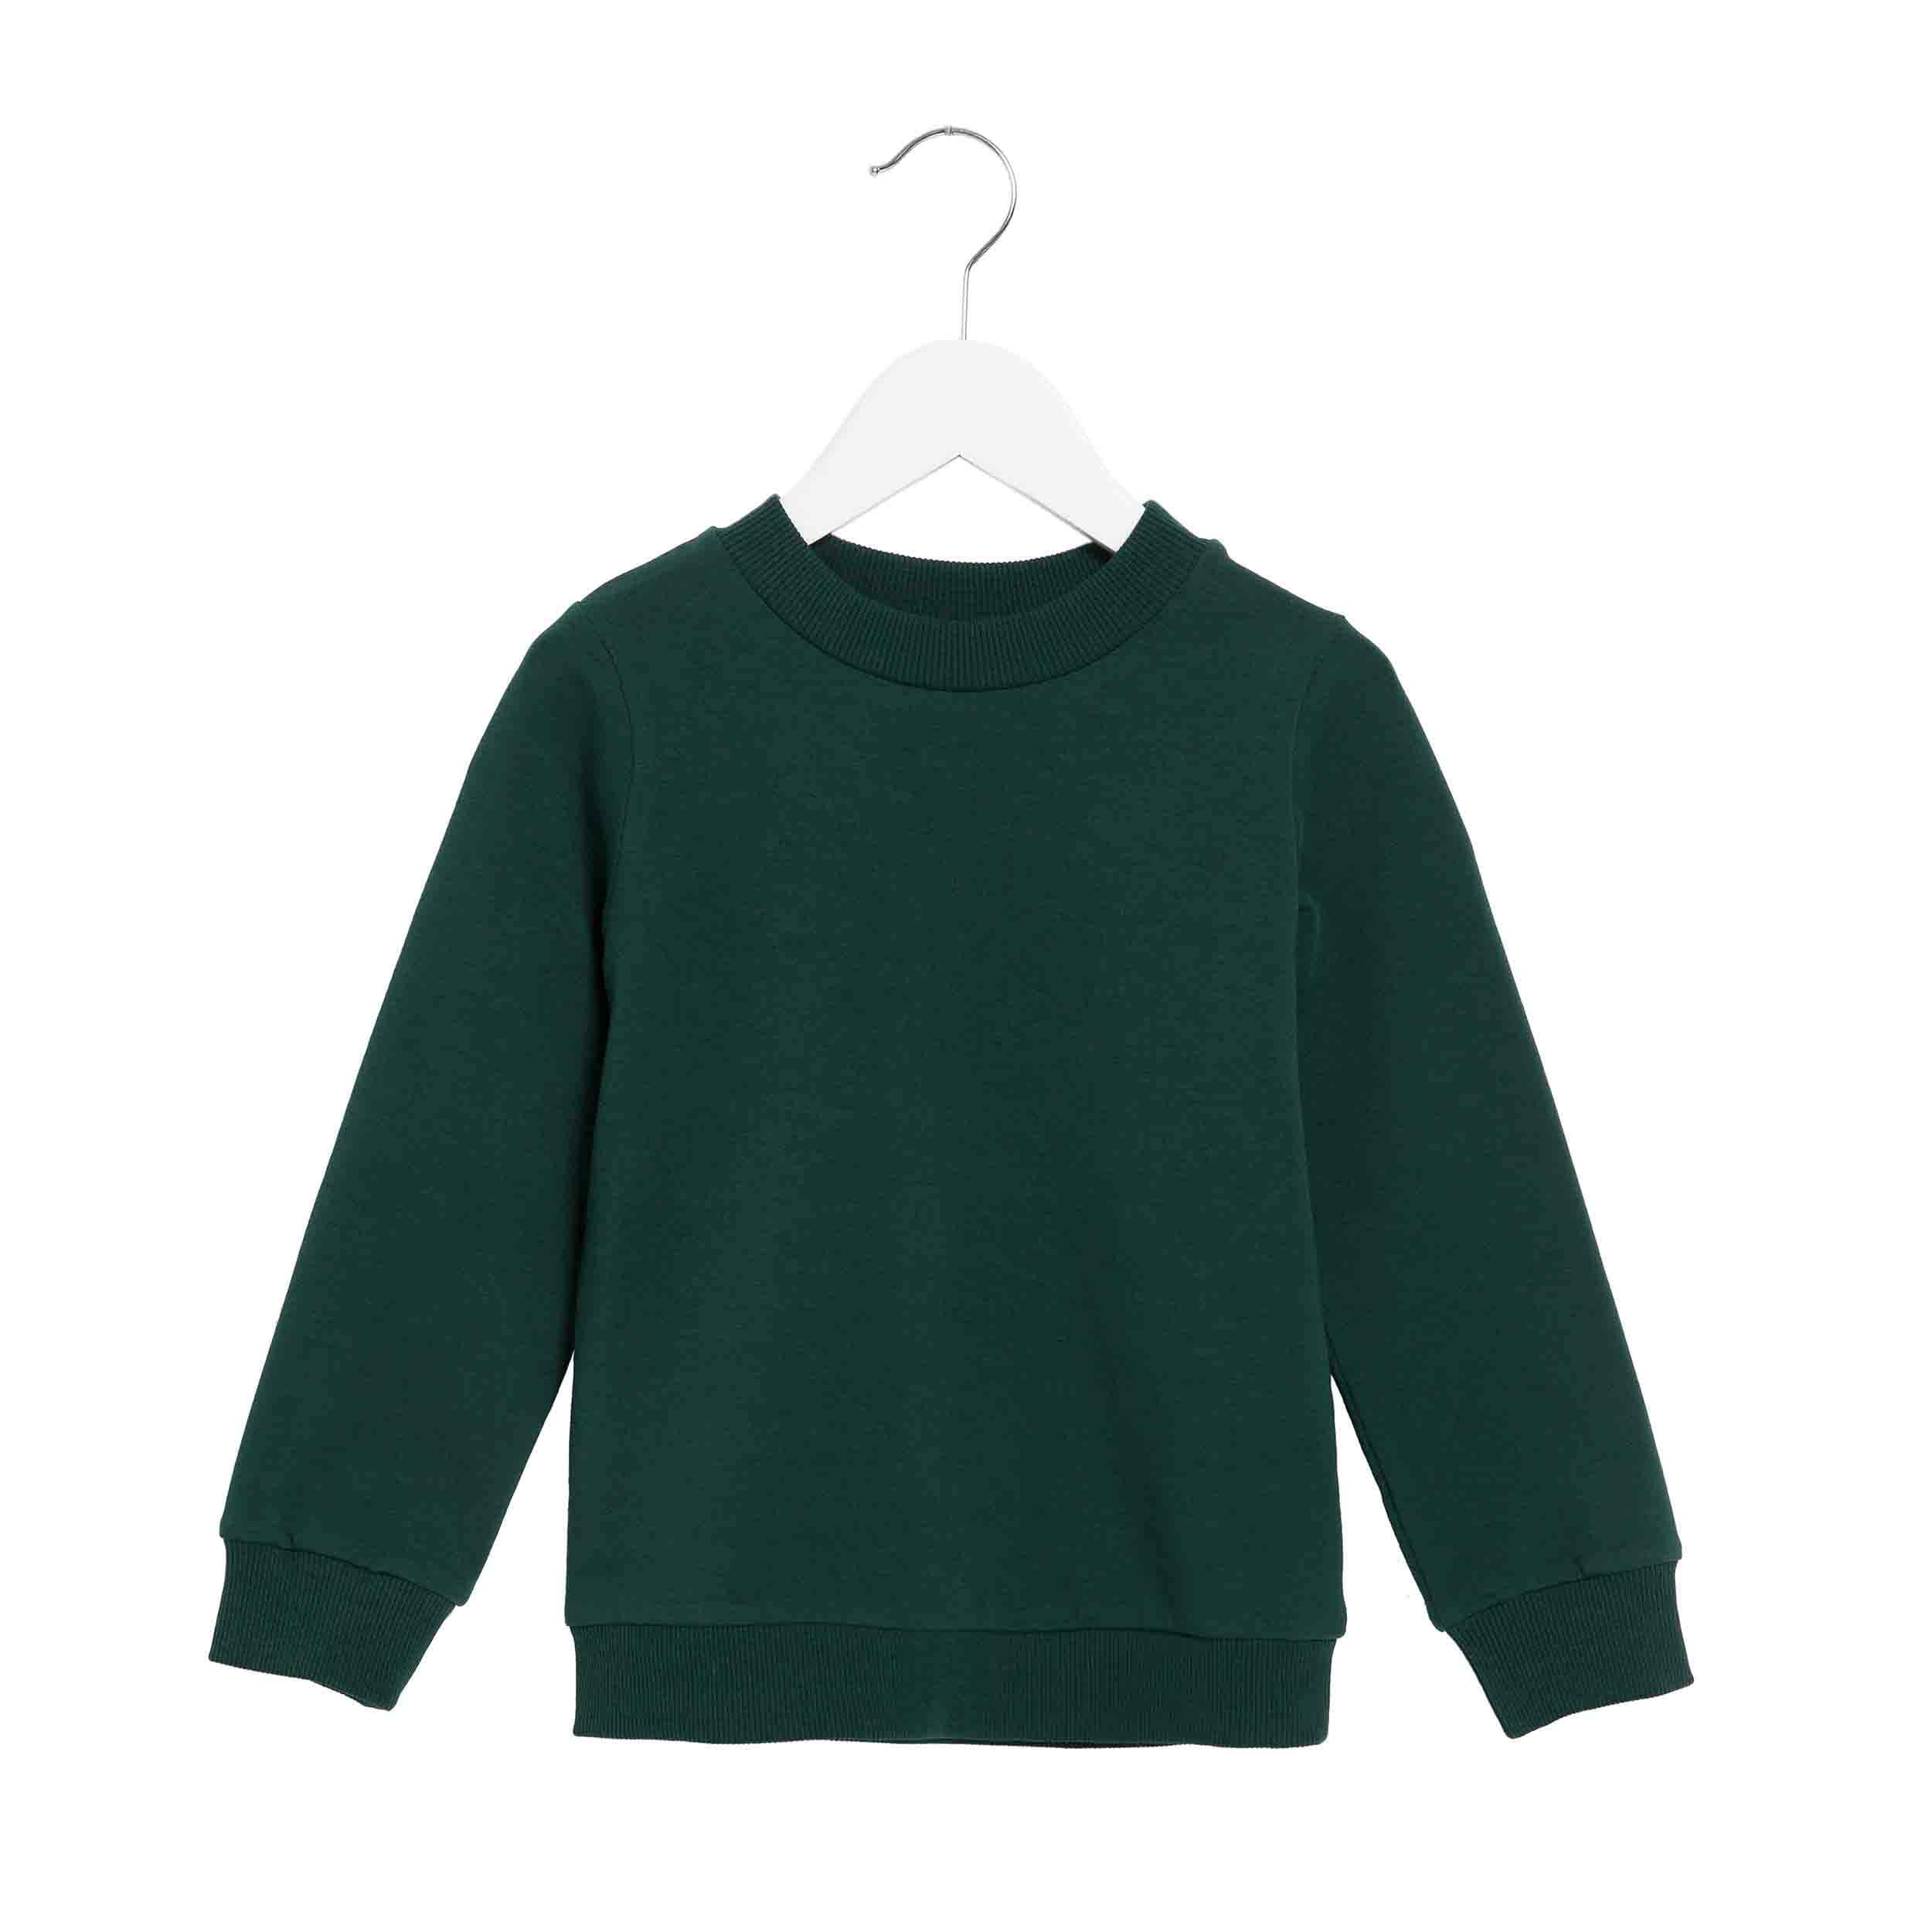 pepeandnika presents wawa copenhagen elegant kidsbrand summerclothes basic Sweatshirt for girls and boys organic and bottle green